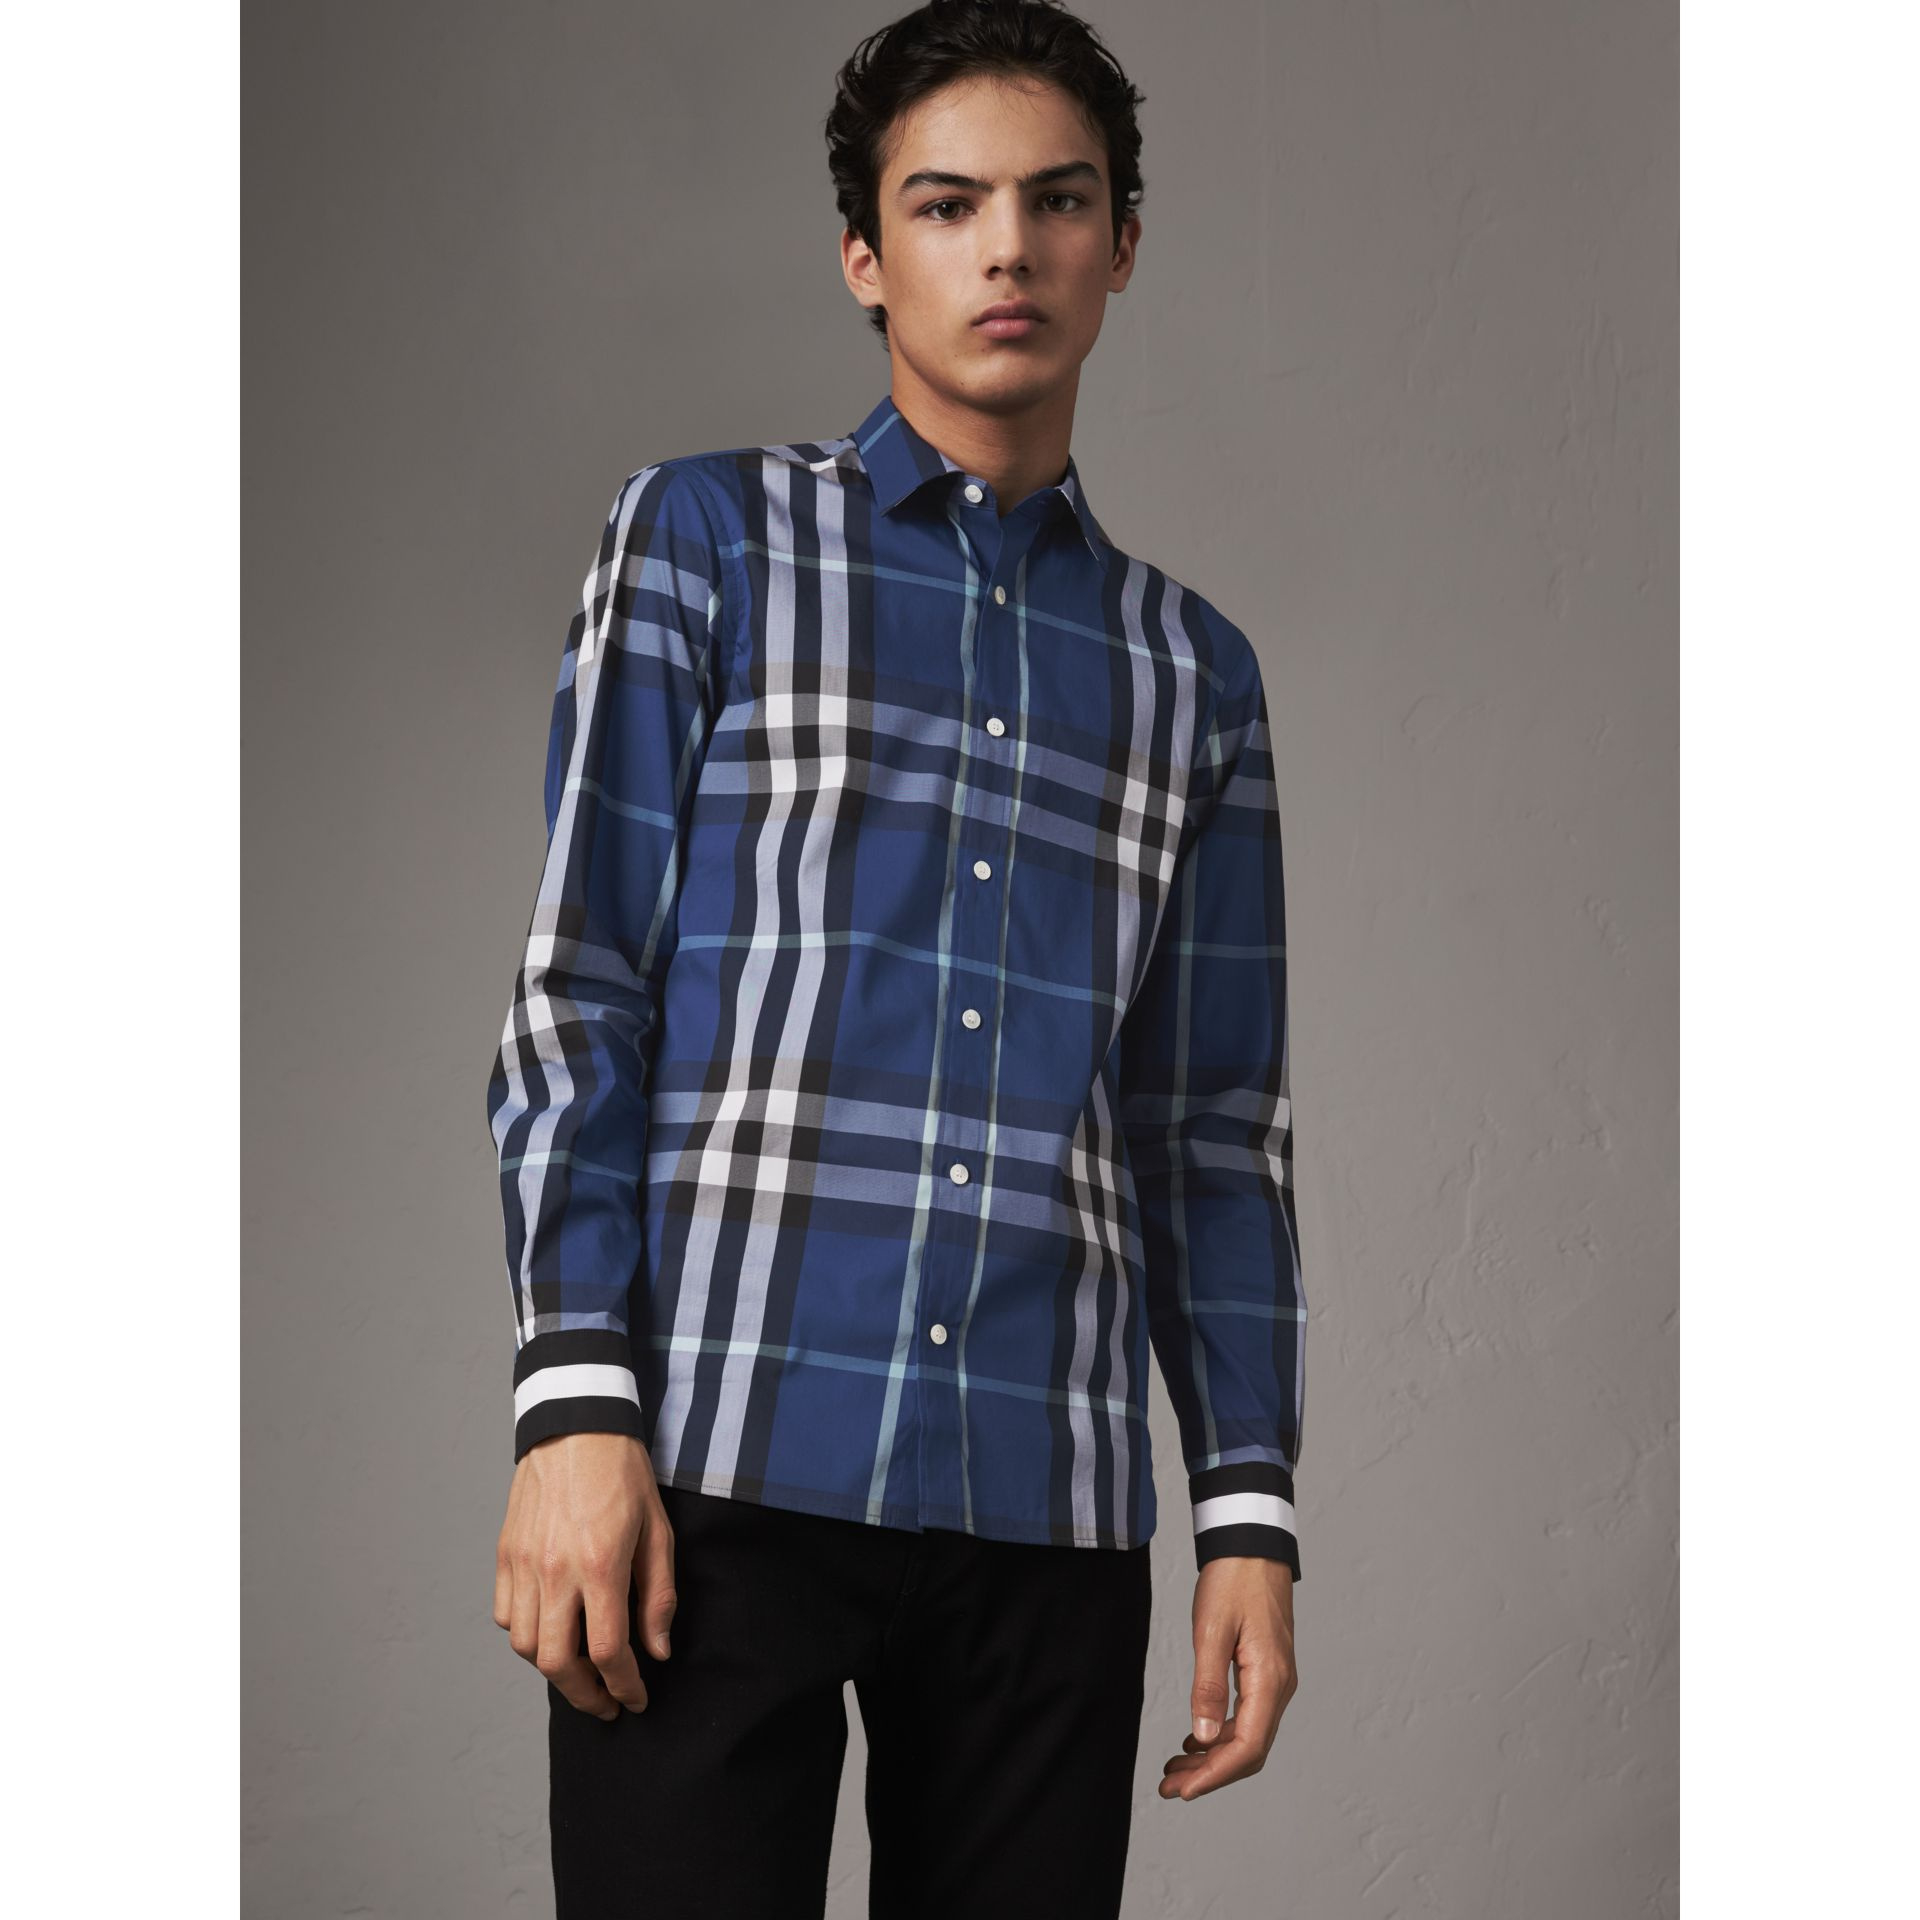 Striped Cuff Check Cotton Blend Shirt in Cobalt Blue - Men | Burberry Singapore - gallery image 4